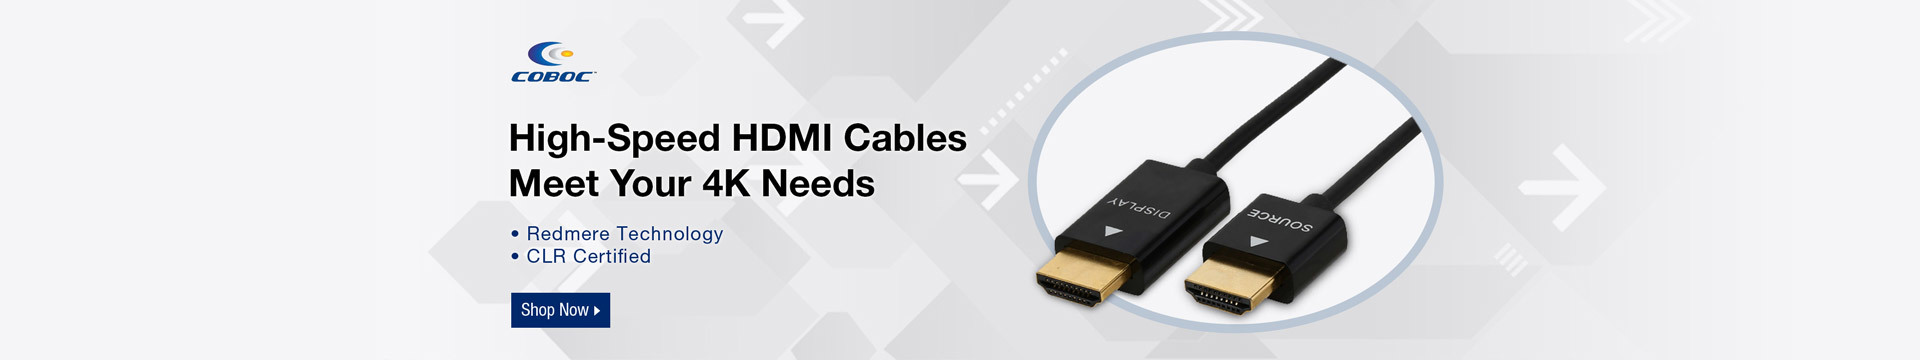 High-speed HDMI cable Meet your 4K needs